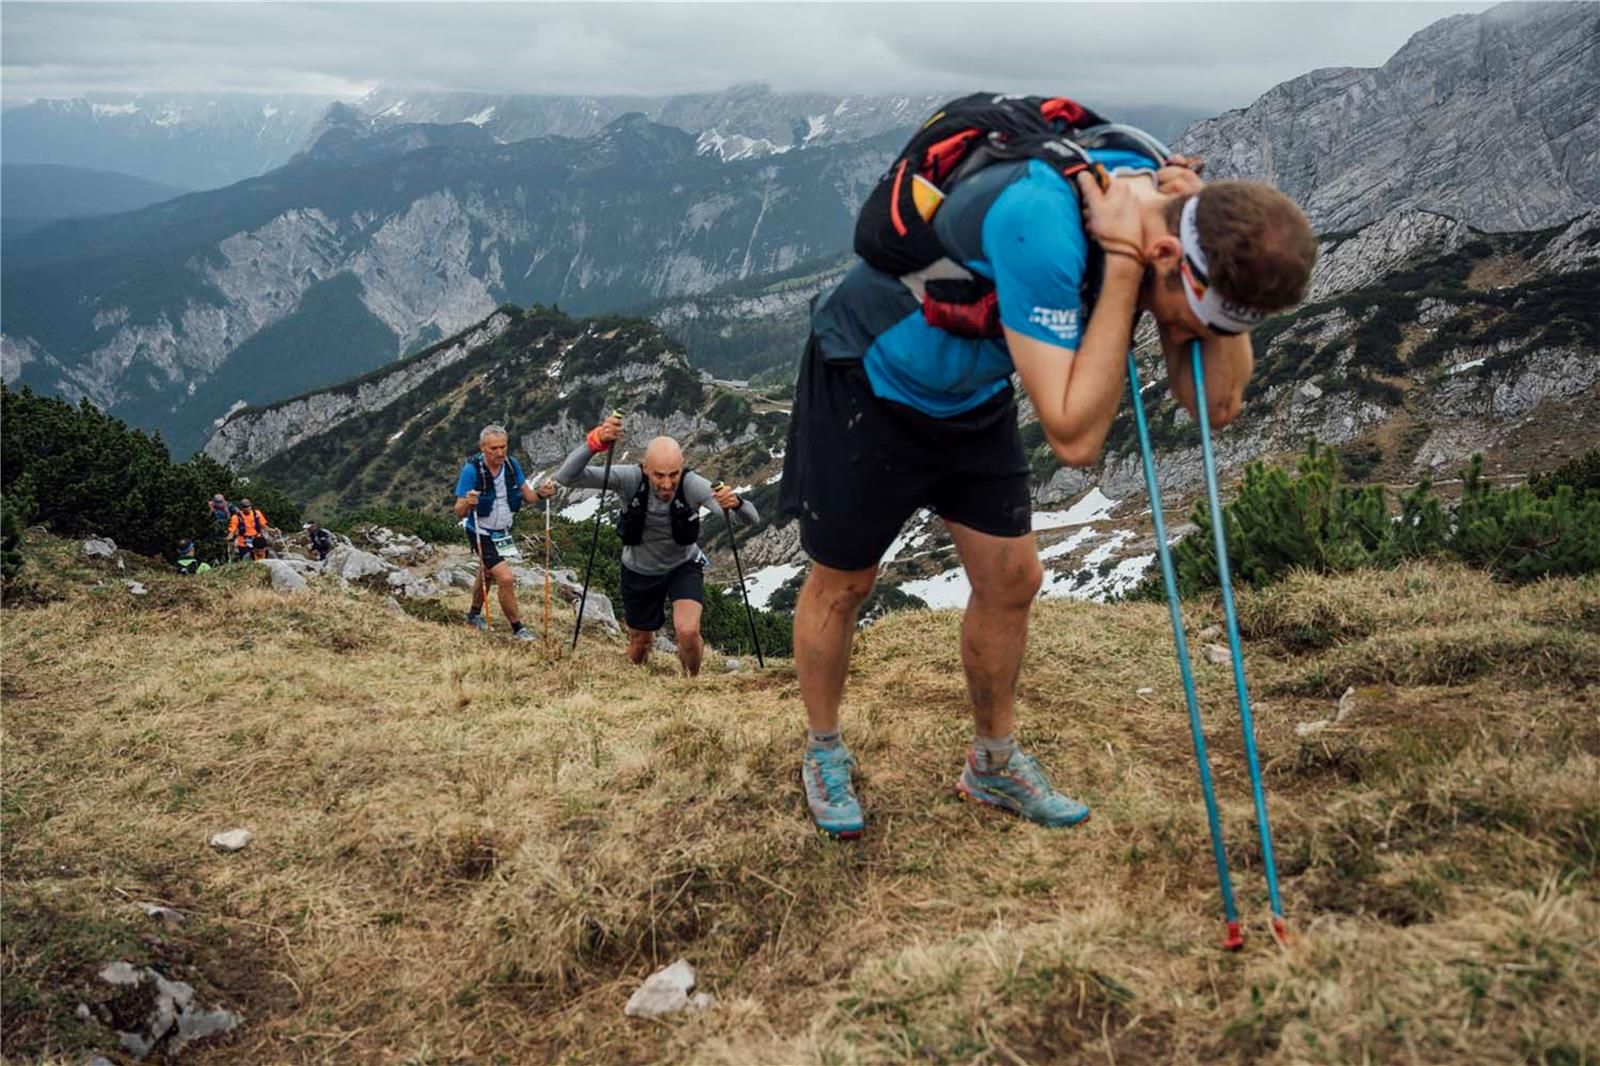 Zugspitz Ultratrail race, Grainau, Germany on 15 June 2019